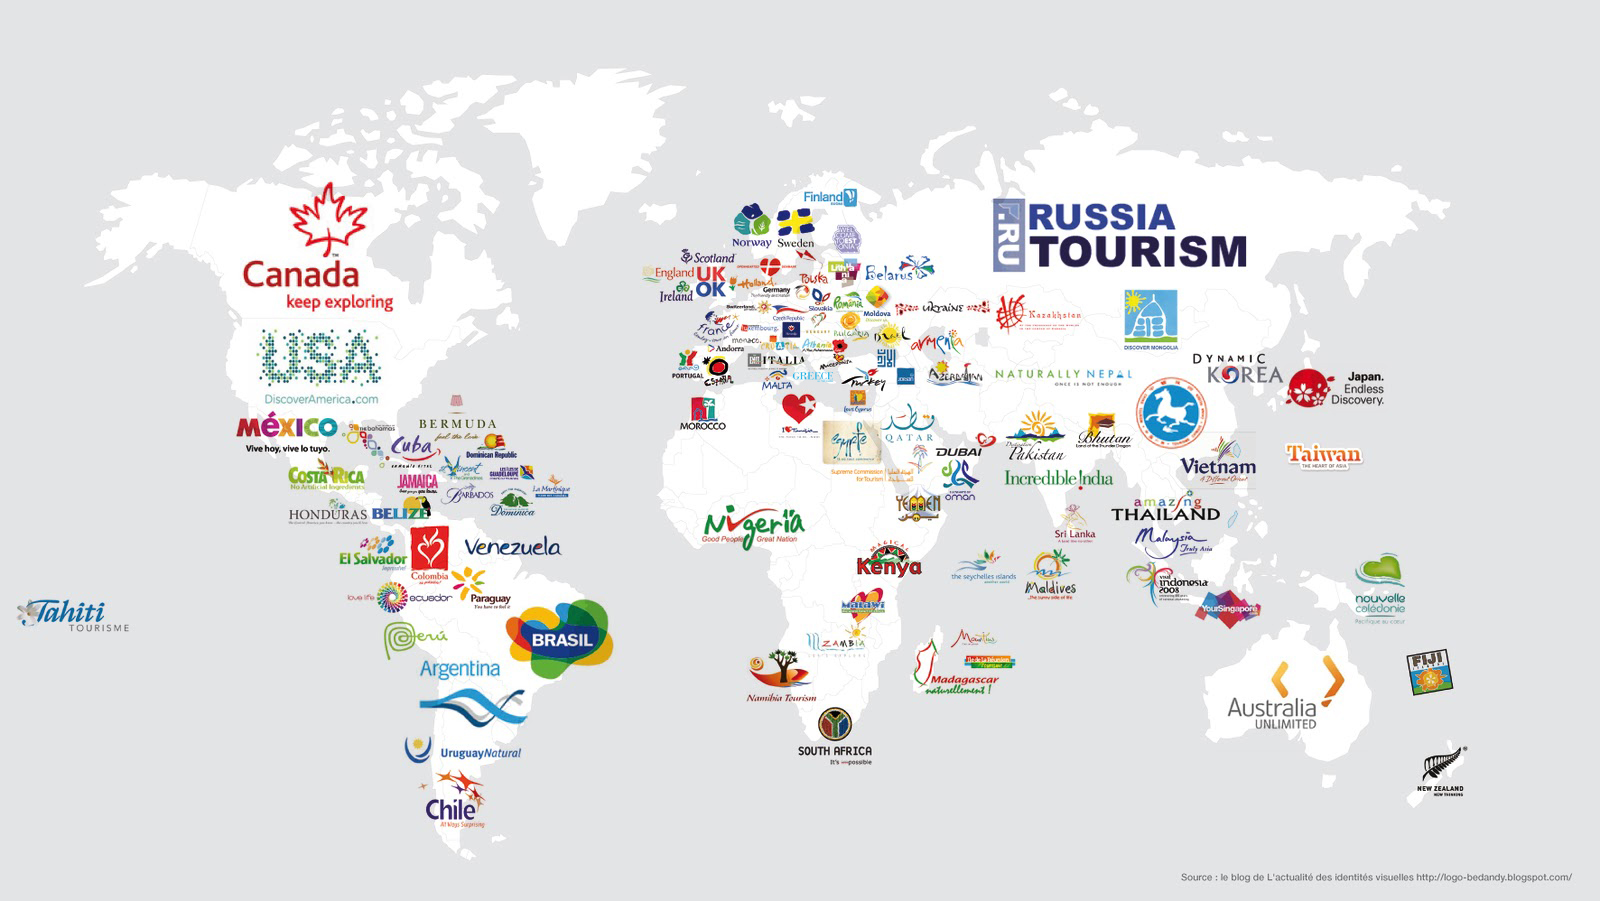 tourism_mapmonde_nov2011